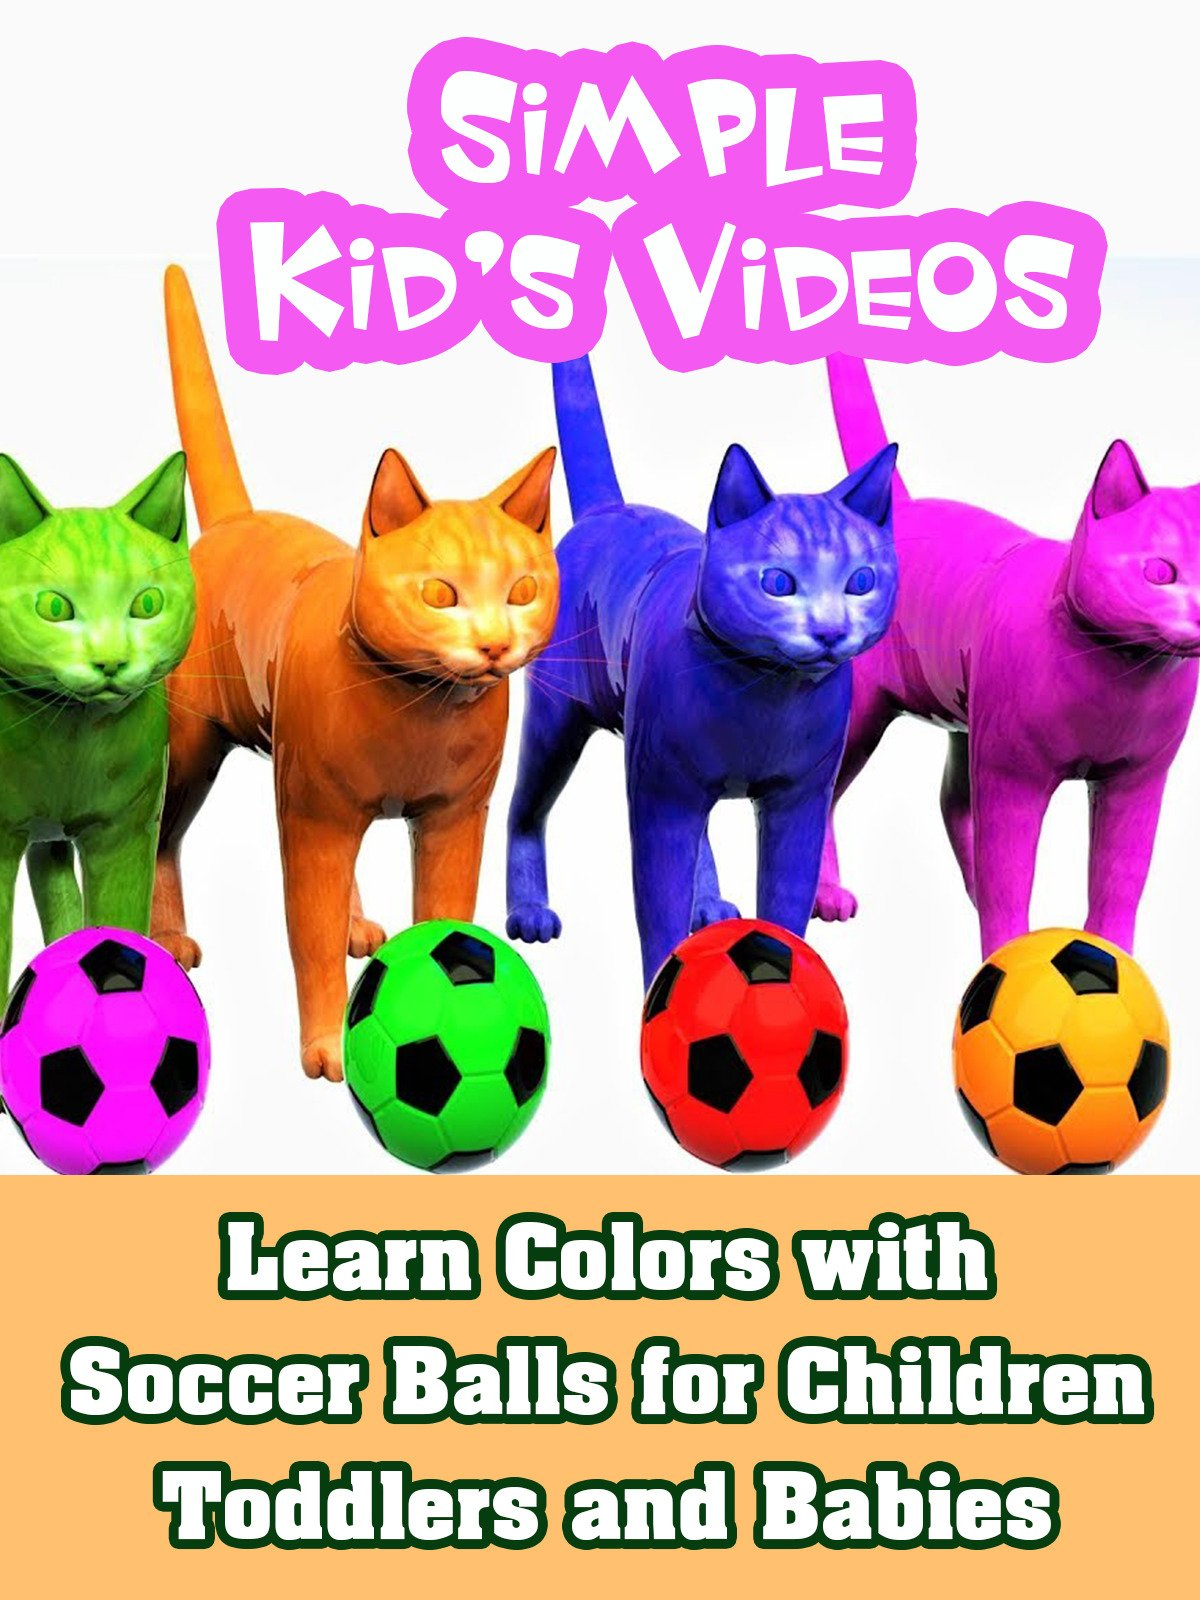 Learn Colors with Soccer Balls for Children Toddlers and Babies